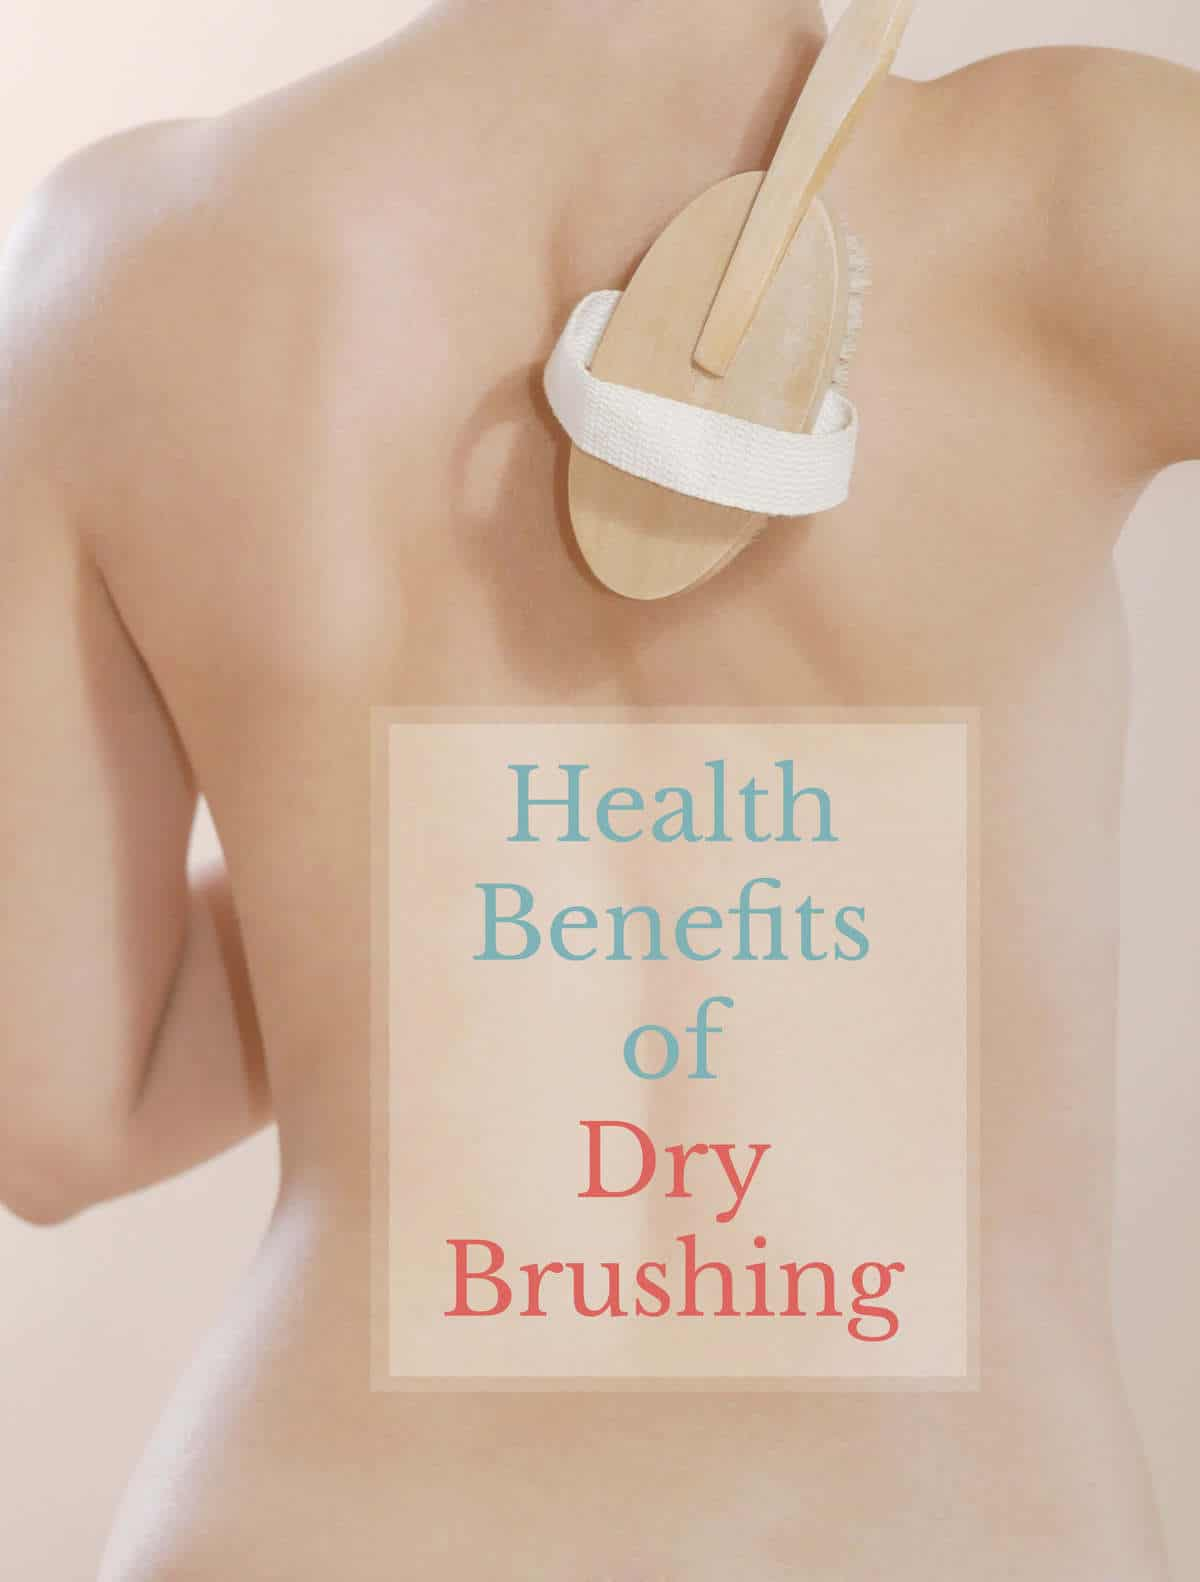 Health Benefits of Dry Brushing | Healthy Living in Body and Mind